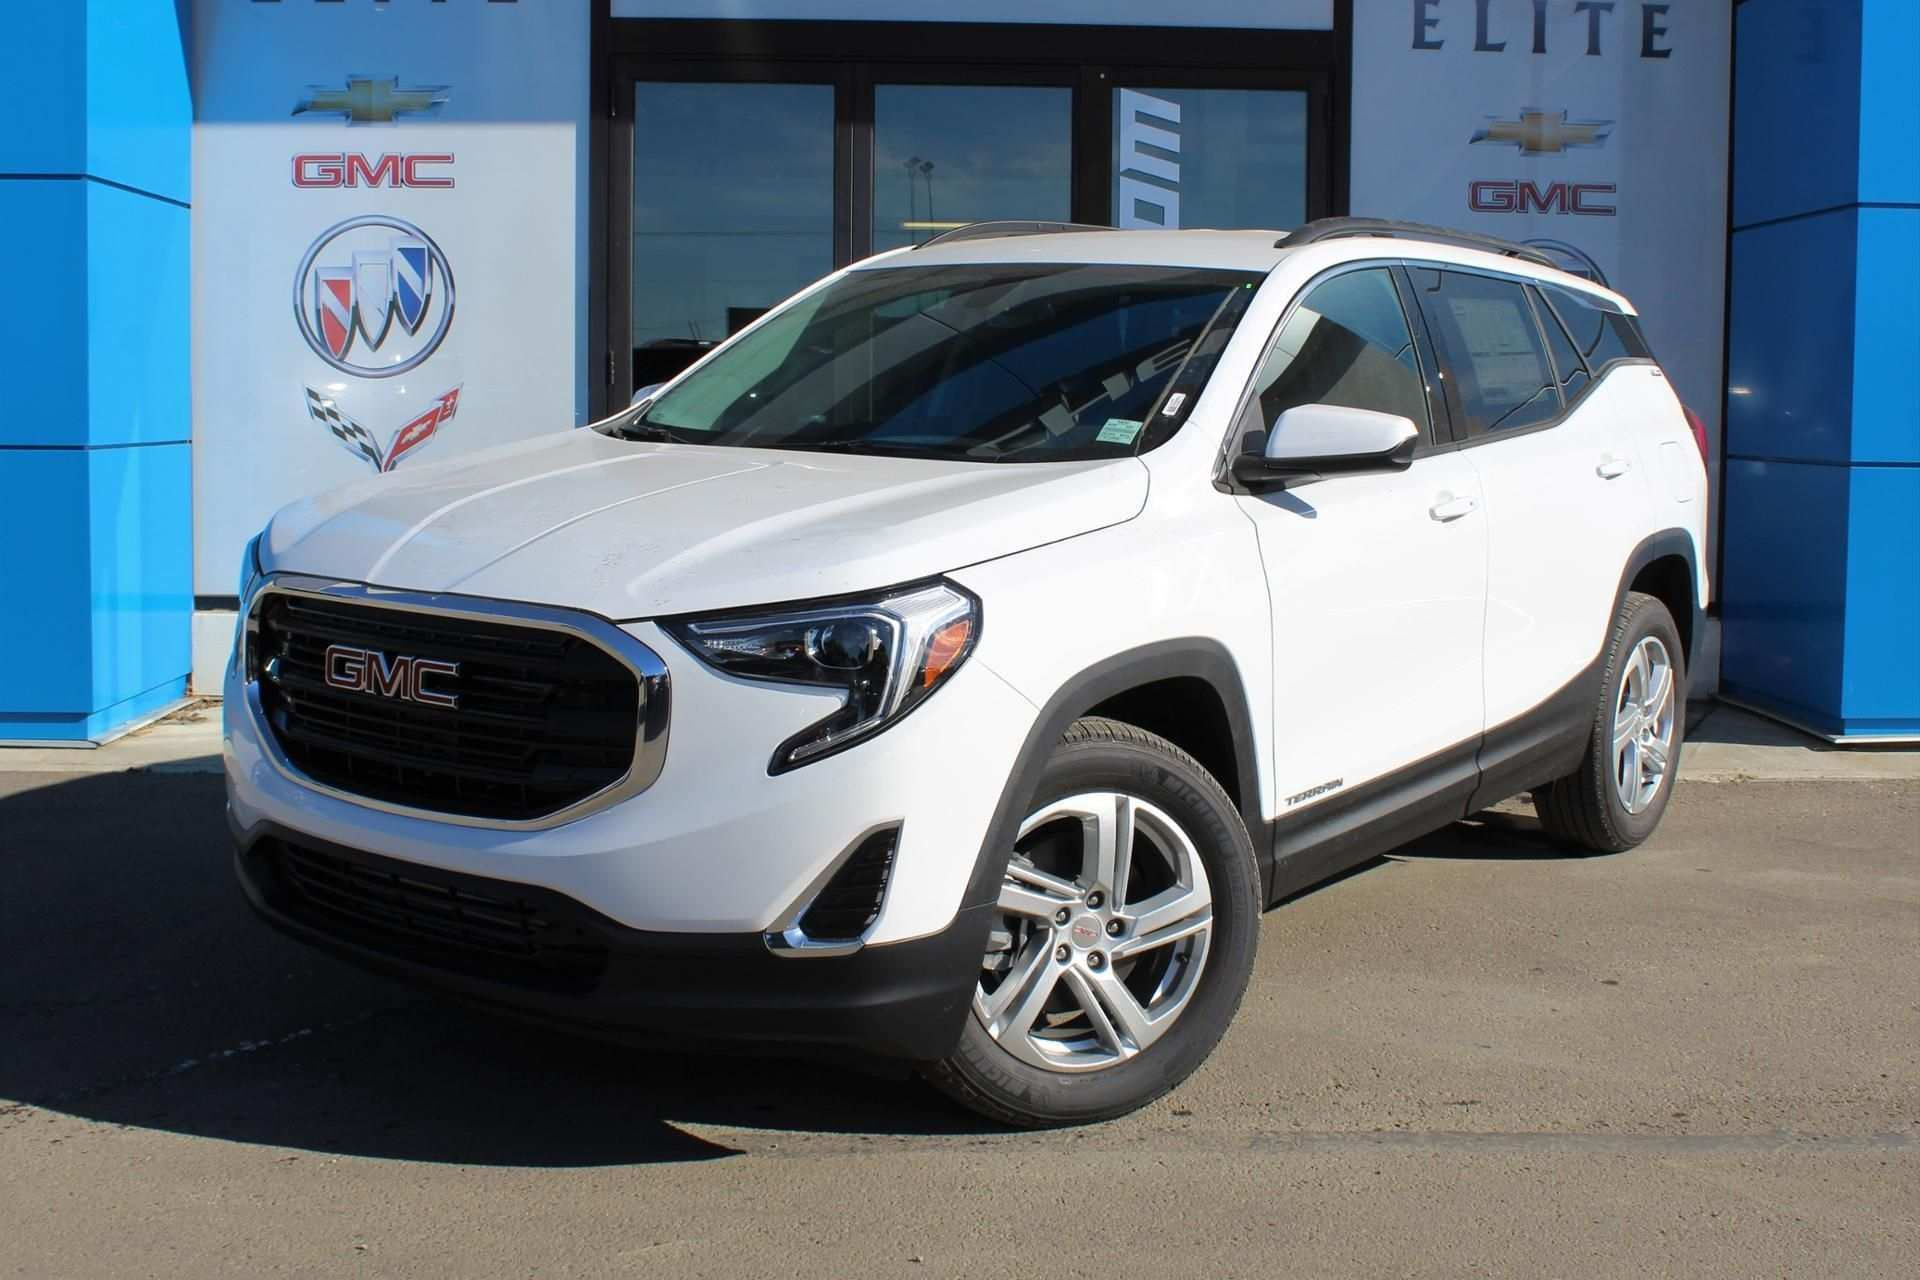 33 Best Review The Gmc Terrain 2019 White Engine Performance for The Gmc Terrain 2019 White Engine